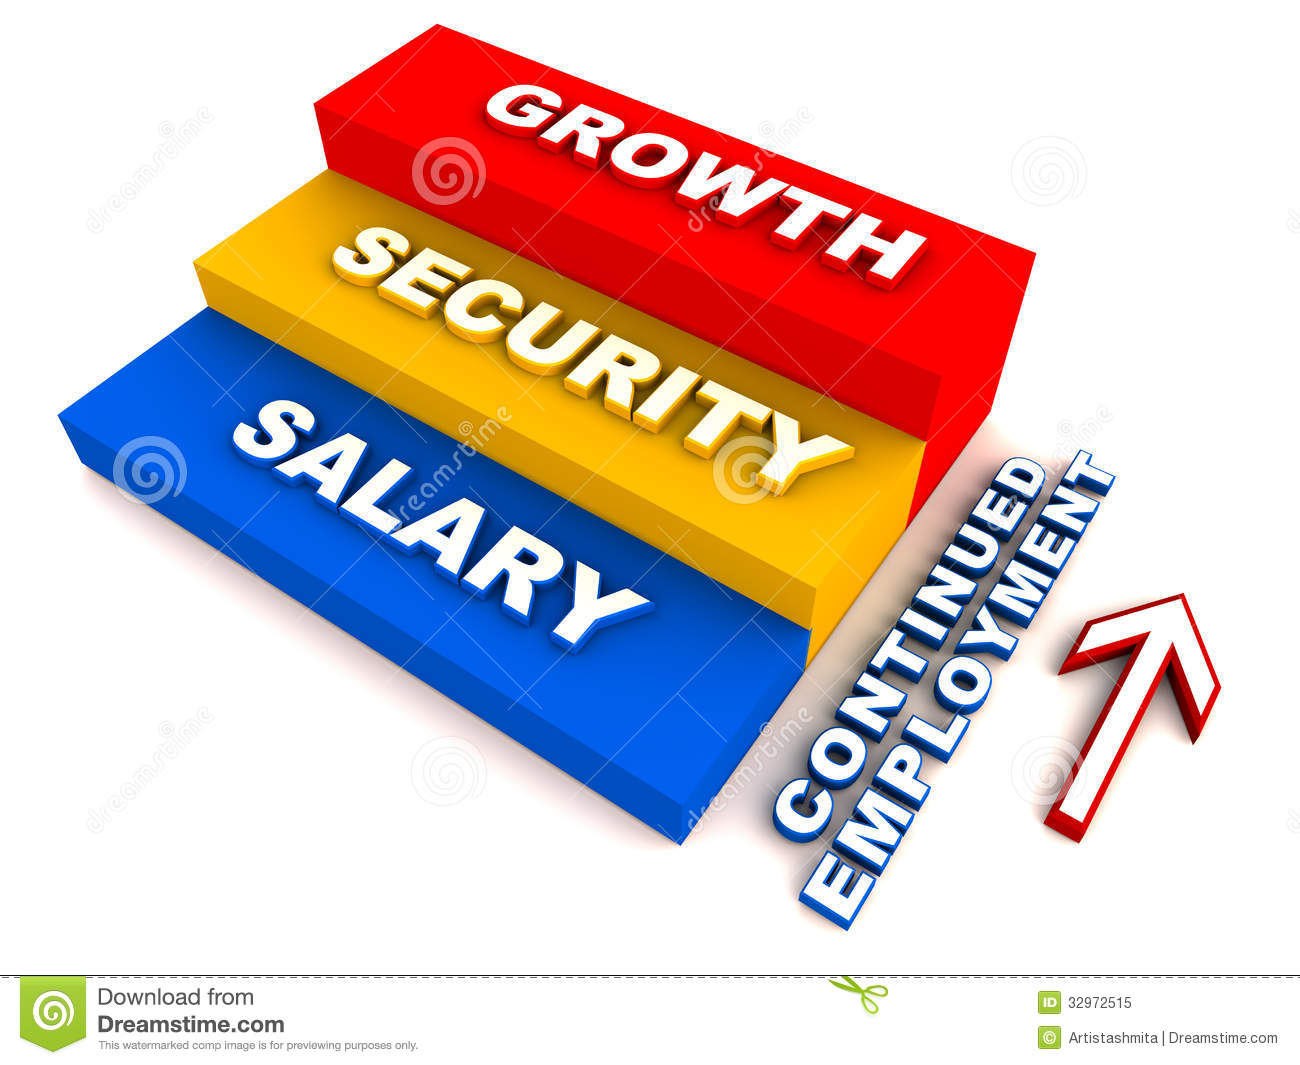 Security business plans